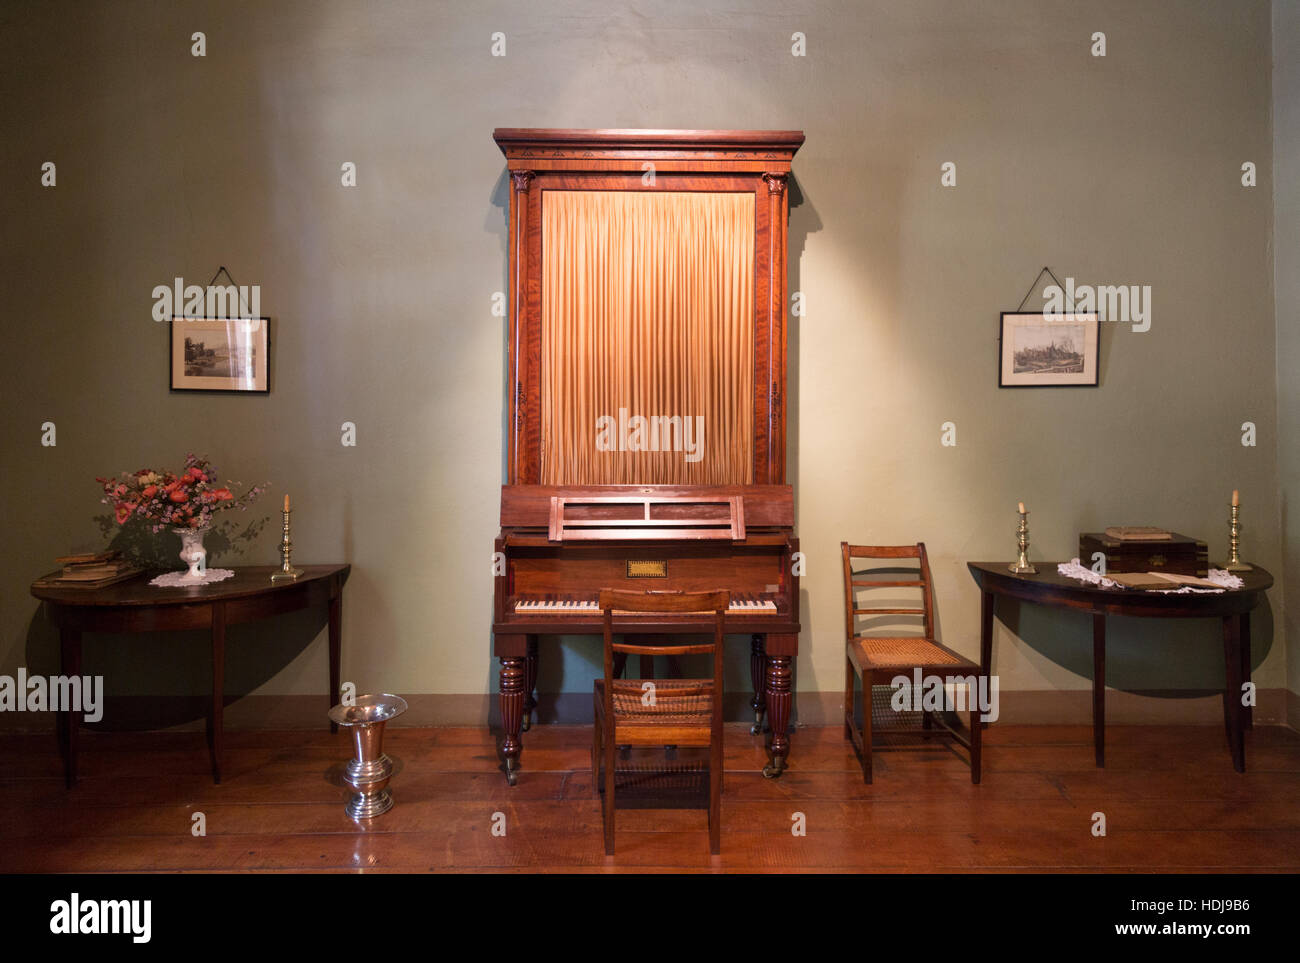 A rare upright grand piano, The Village Museum, Stellenbosch, South Africa - Stock Image